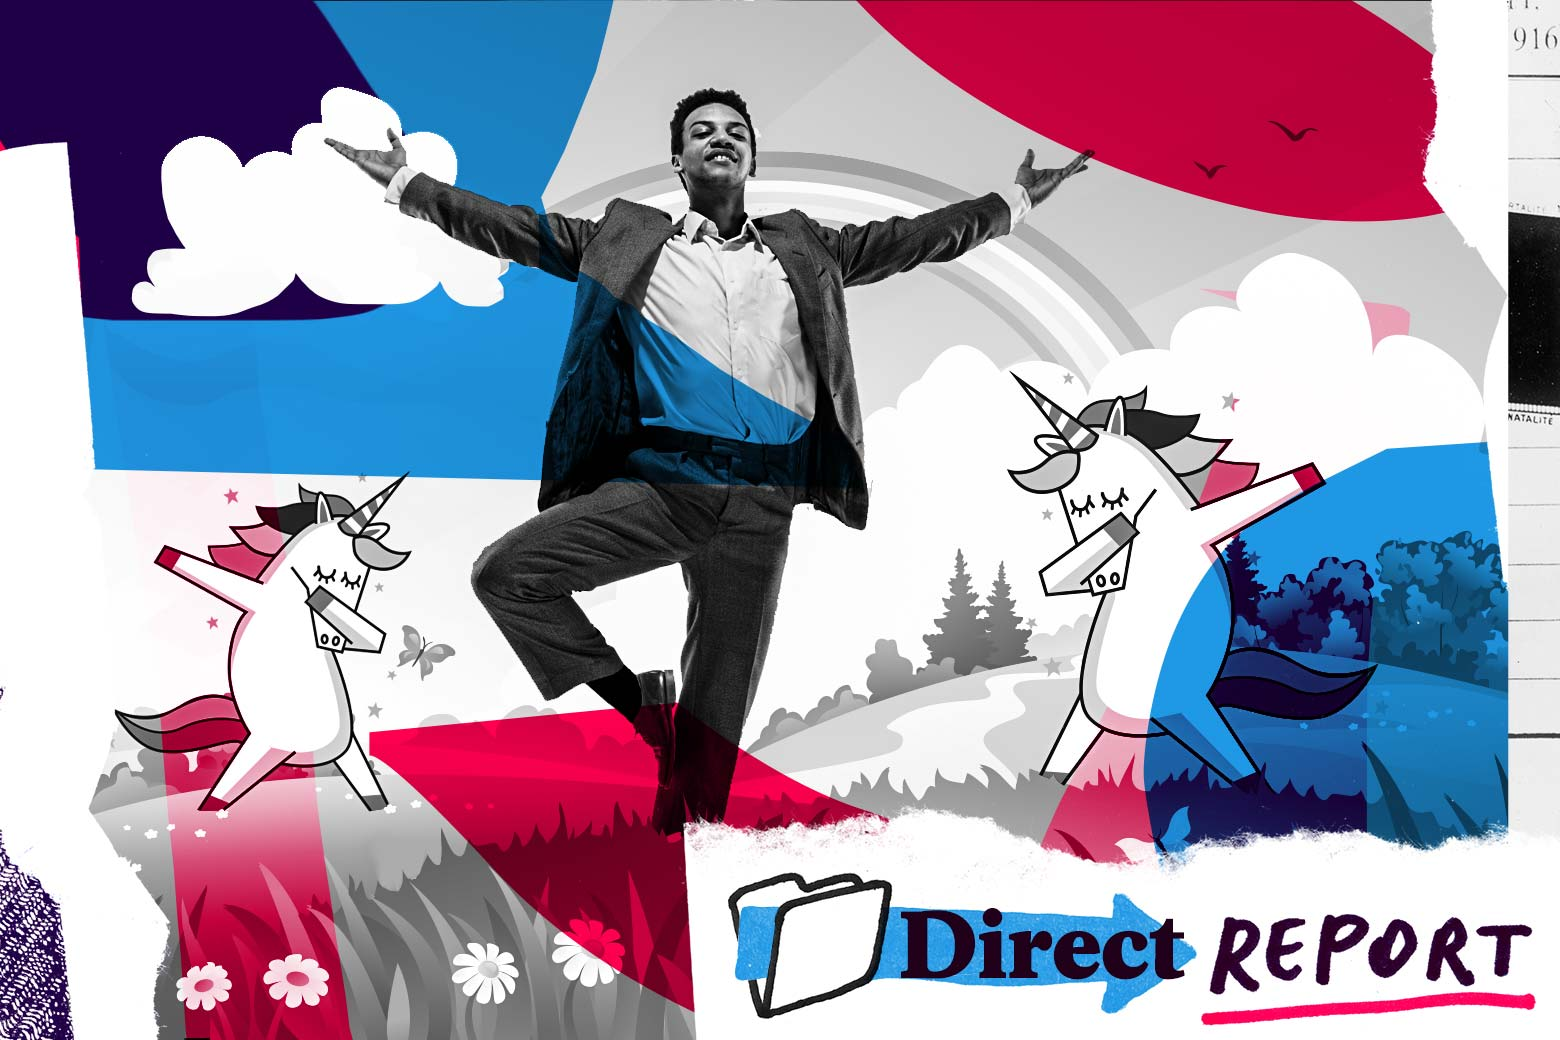 Businessman frolicking in a field with rainbows and dabbing unicorns.